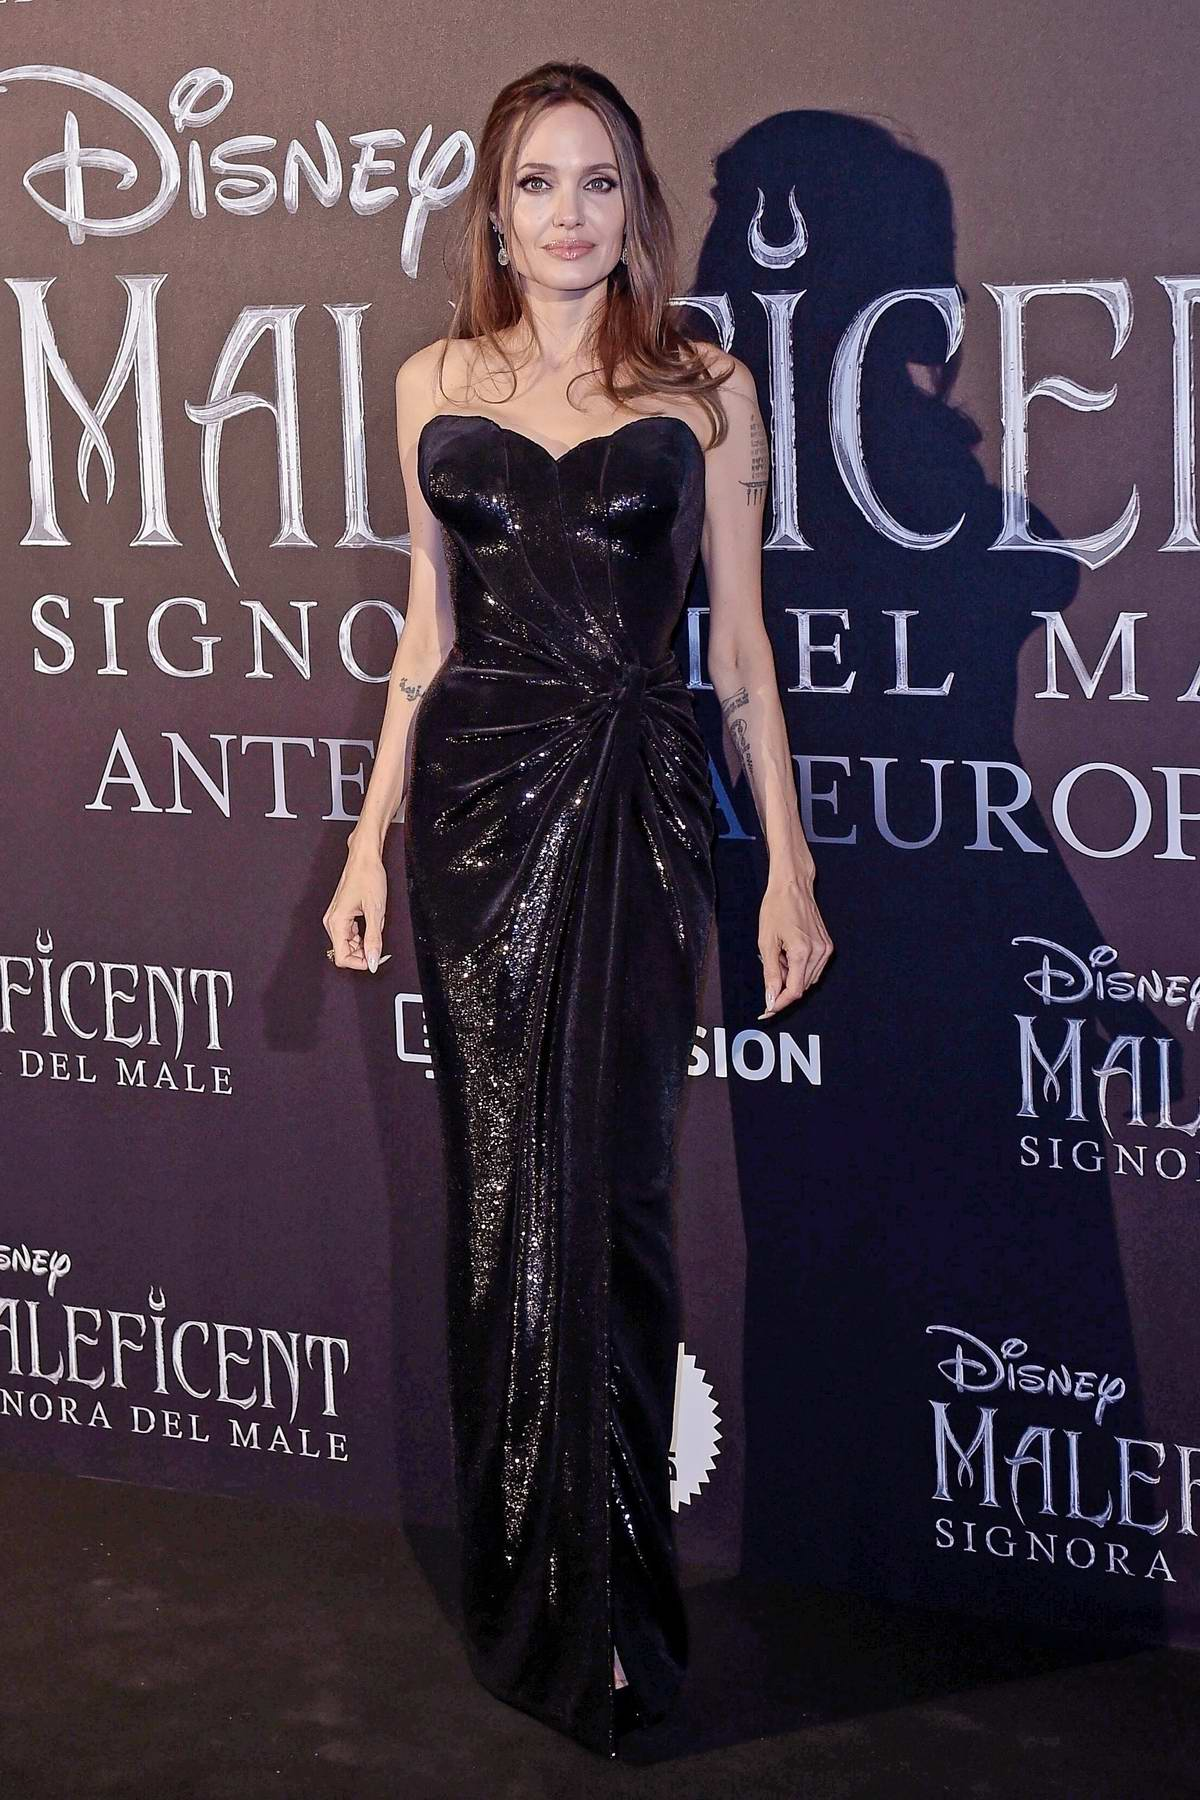 Angelina Jolie and Michelle Pfeiffer attend the European Premiere of 'Maleficent: Mistress of Evil' in Rome, Italy